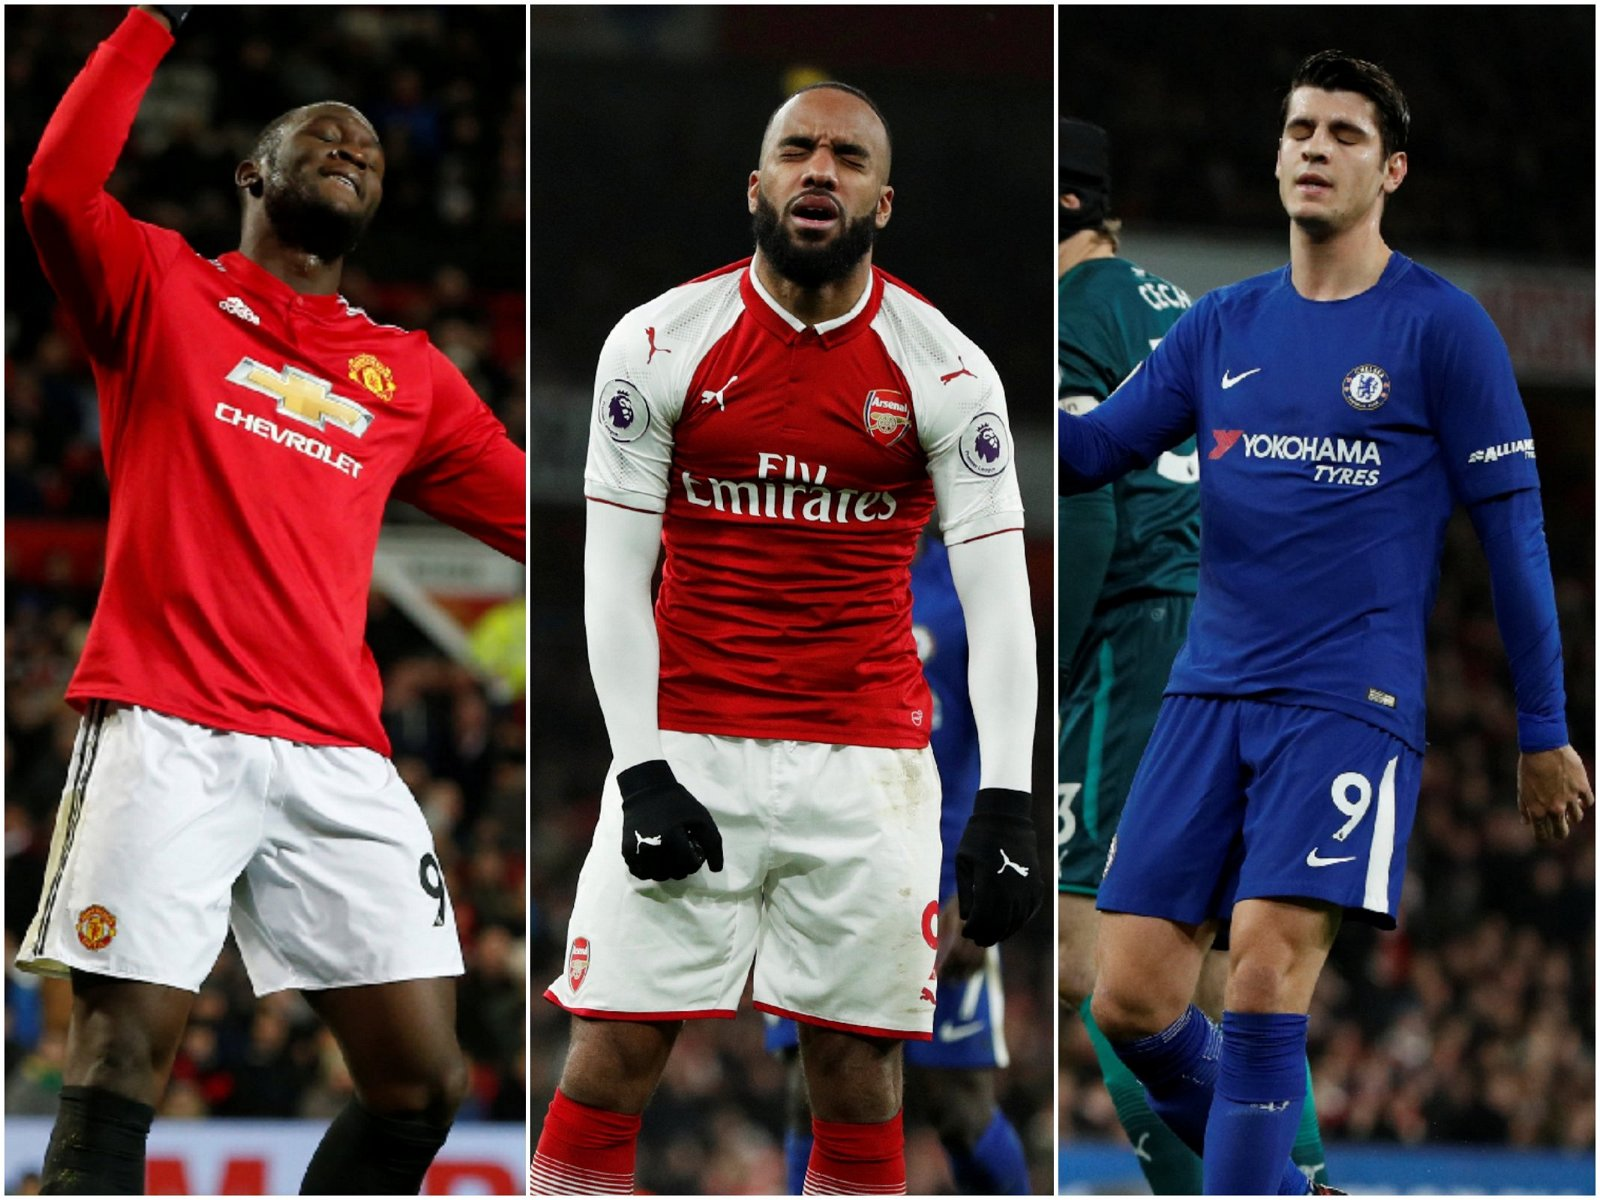 Morata, Lukaku and Lacazette: The signings that prove strikers are diminishing in importance